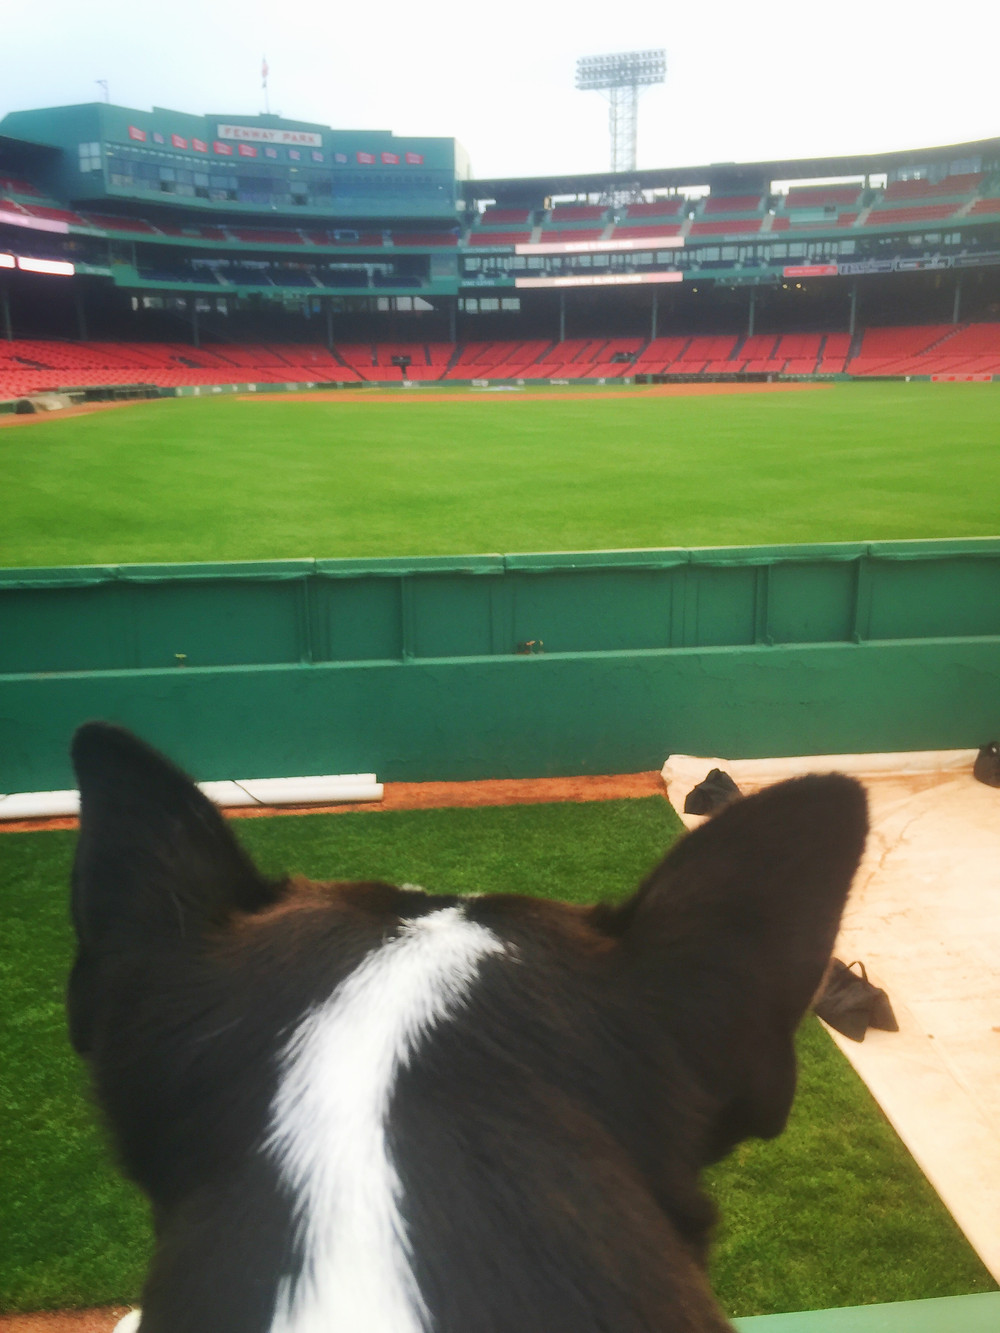 Yoda enjoys a view behind home plate at Fenway Park